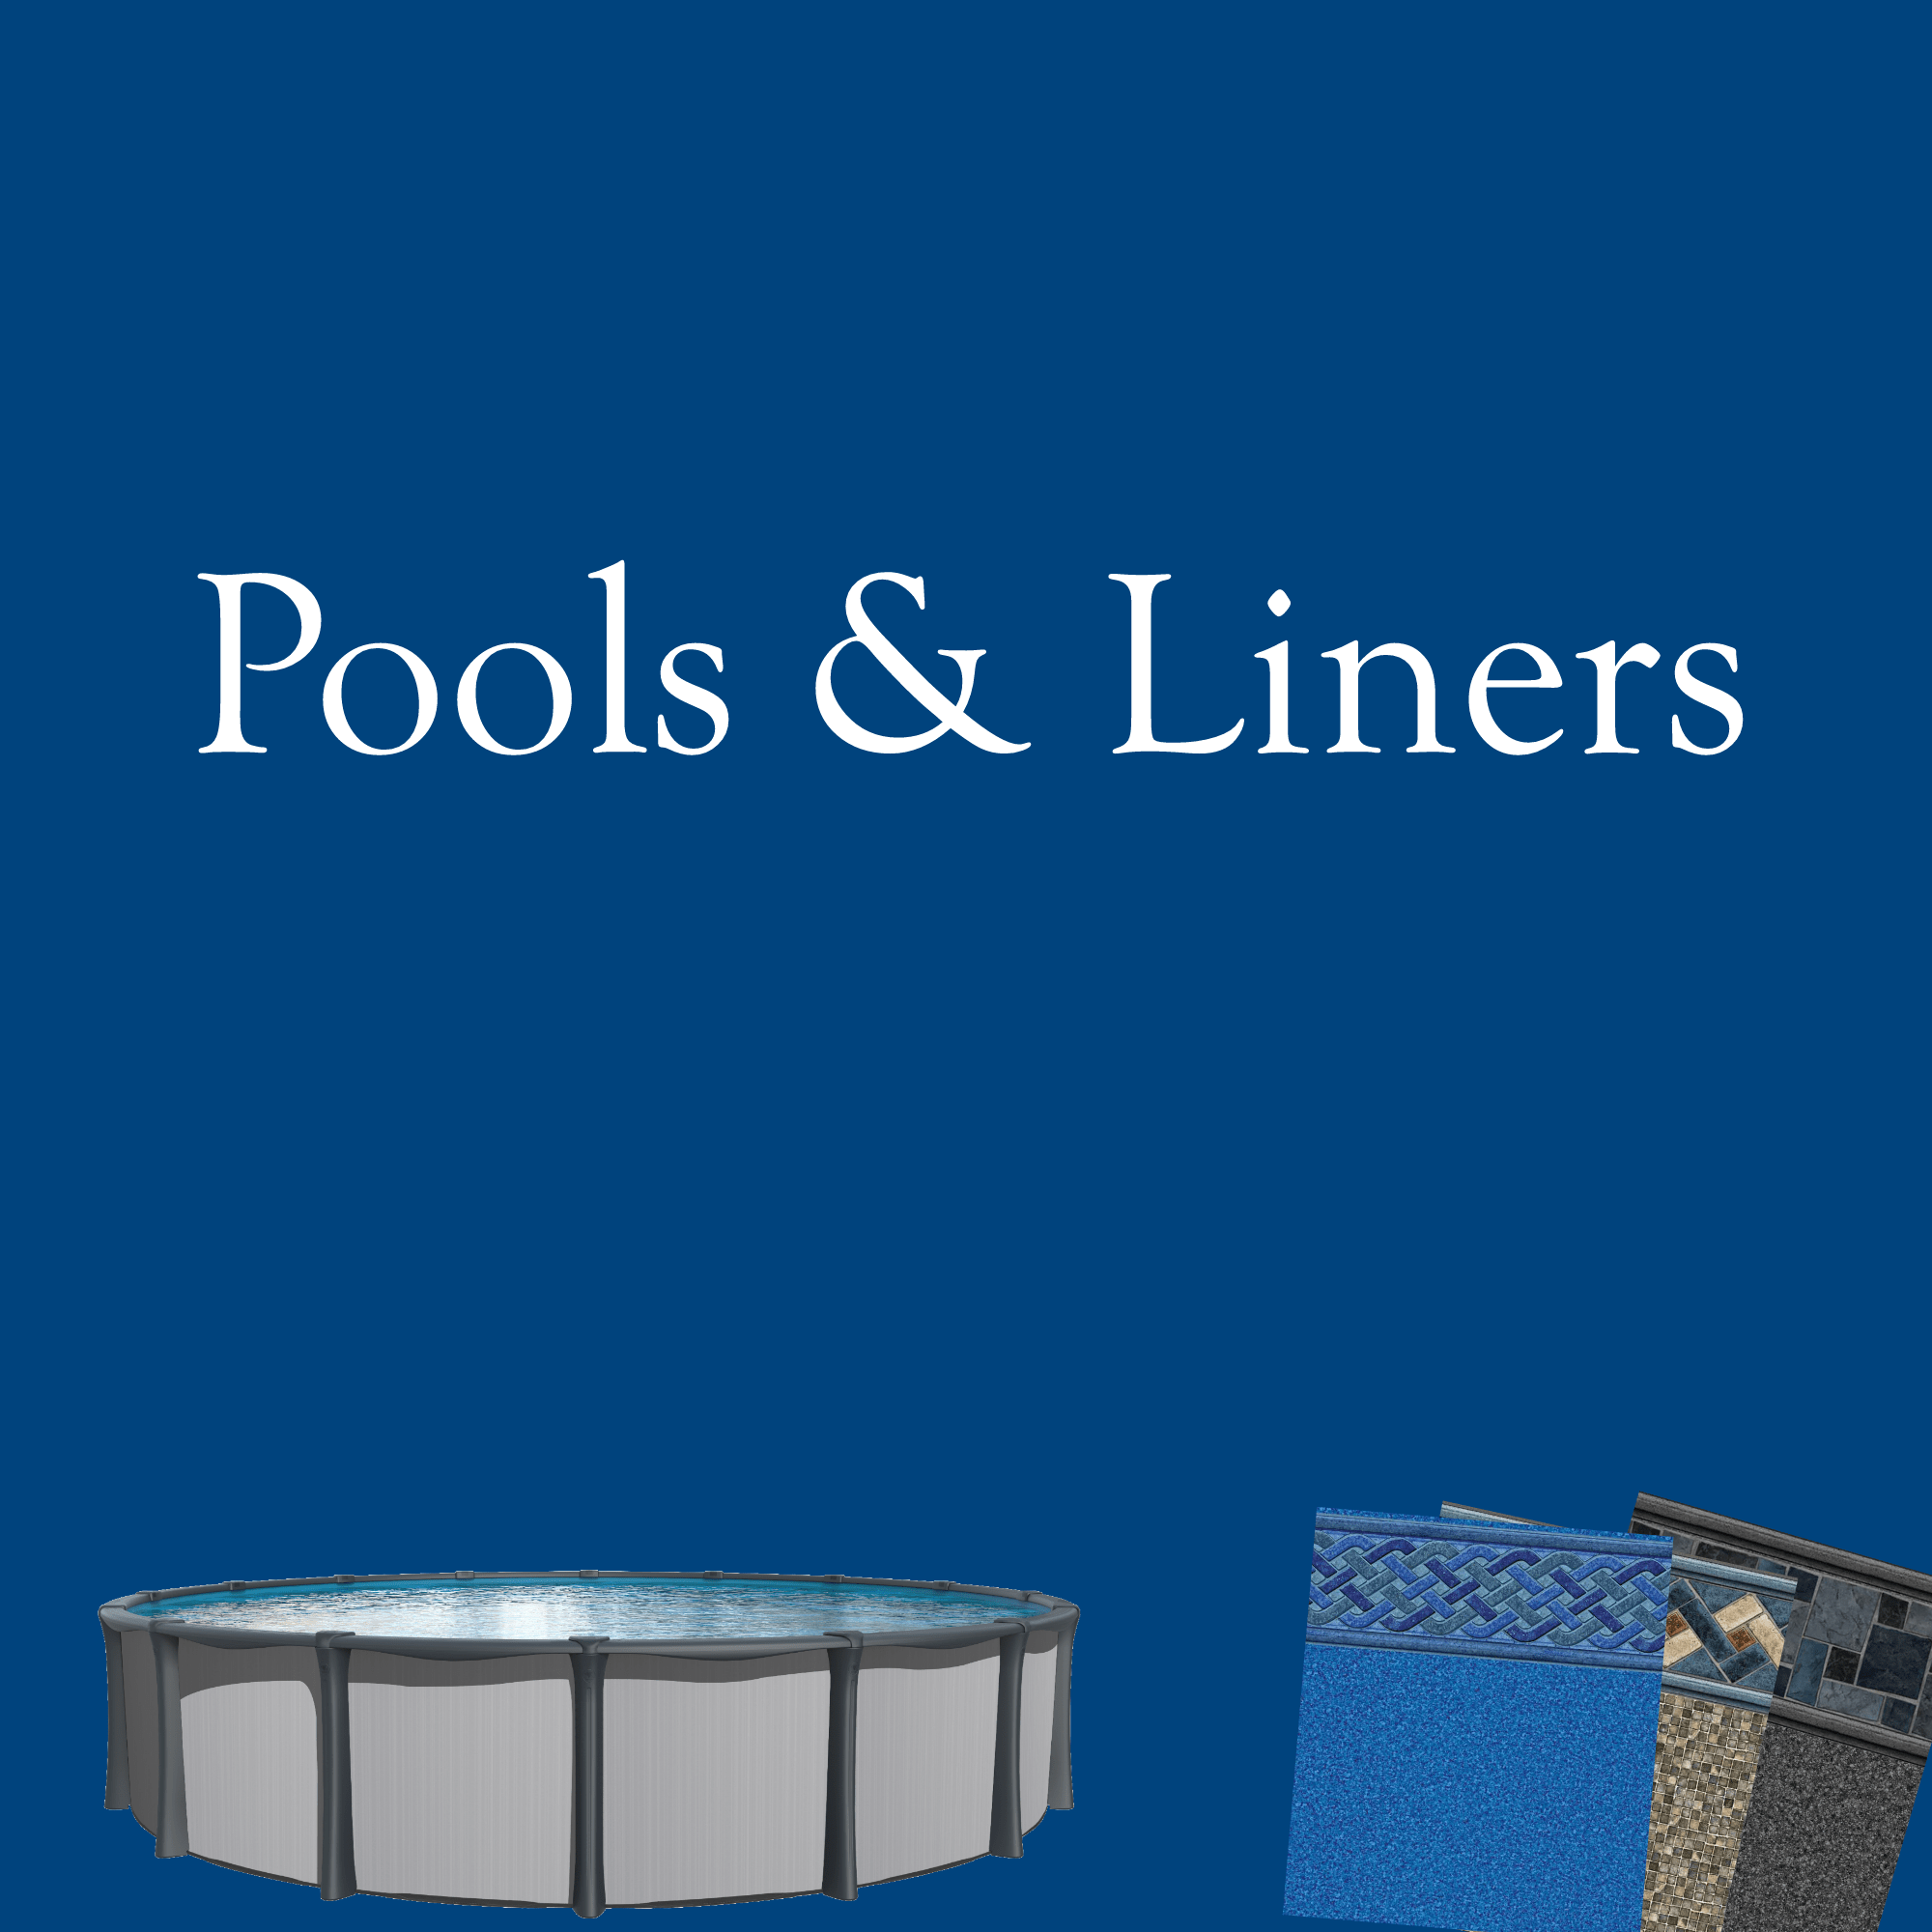 Pools and Liners